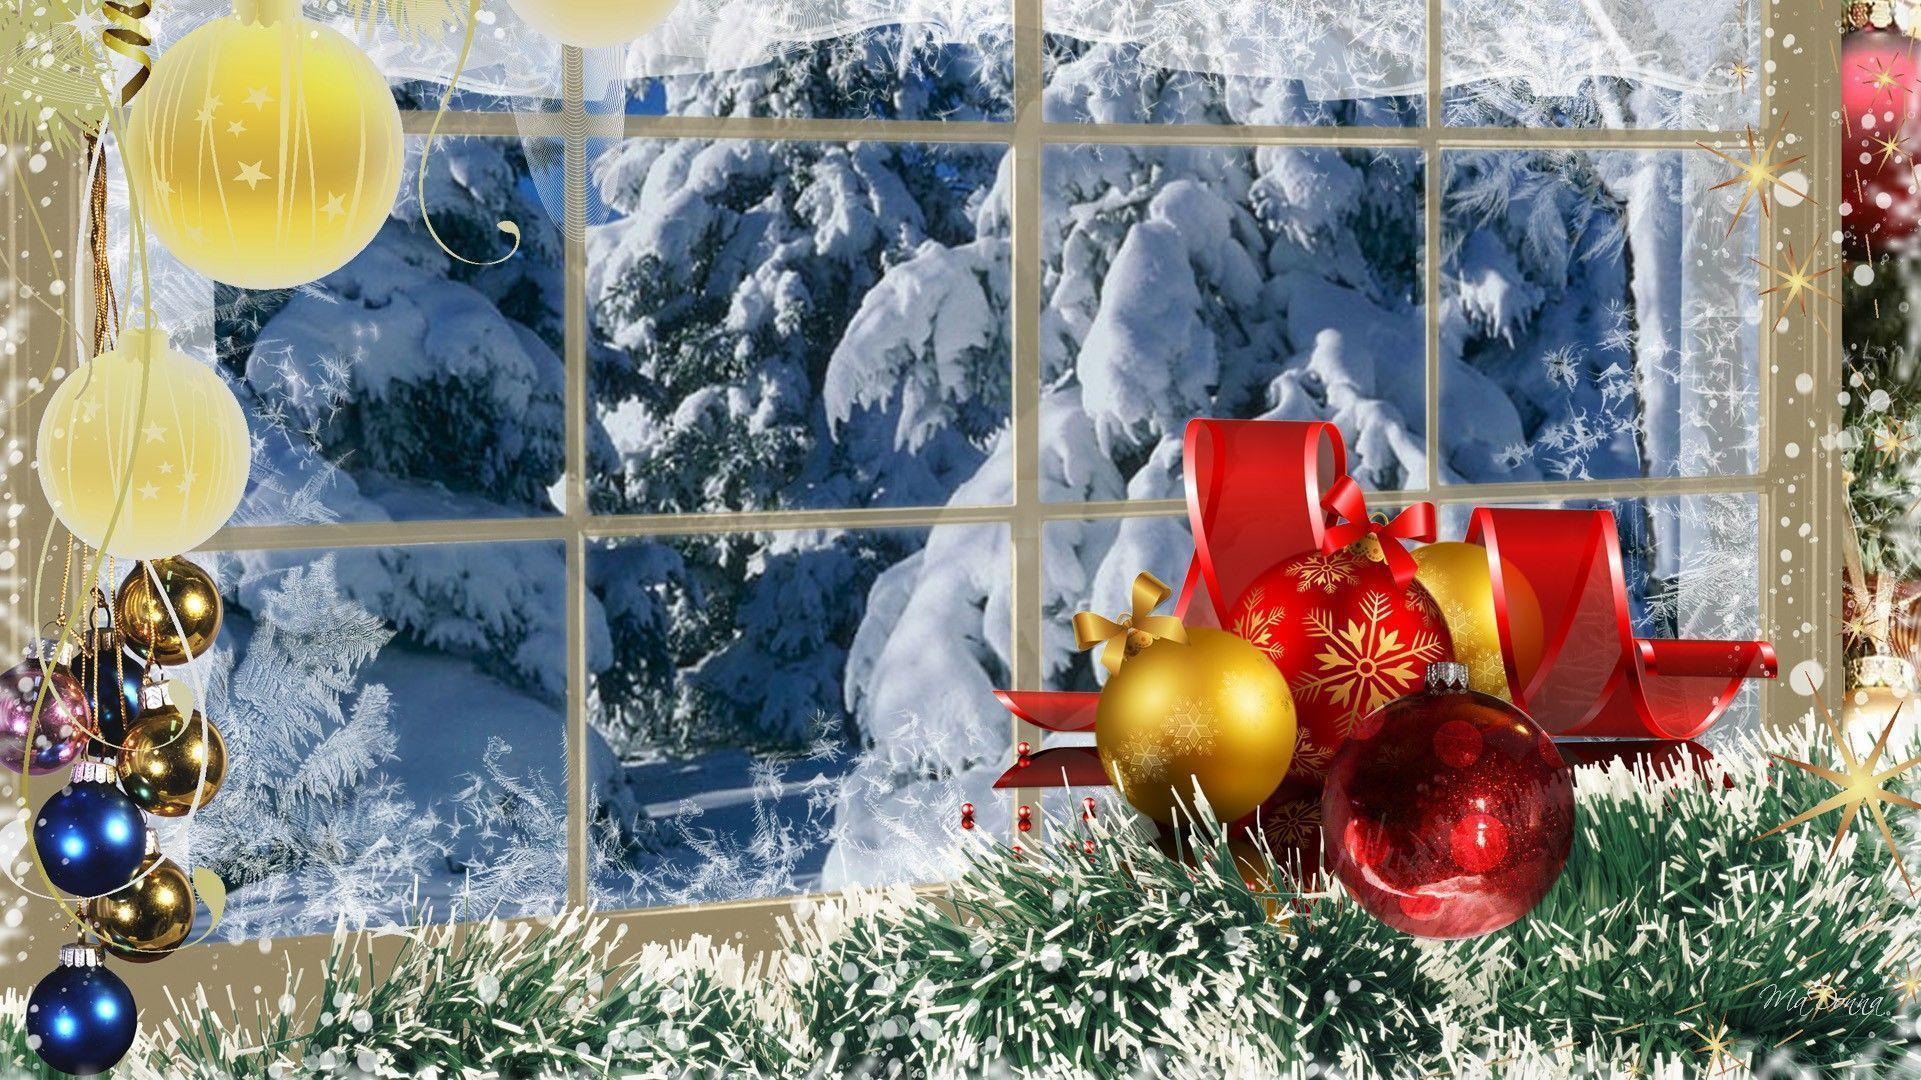 Merry Christmas Paintings Free Download